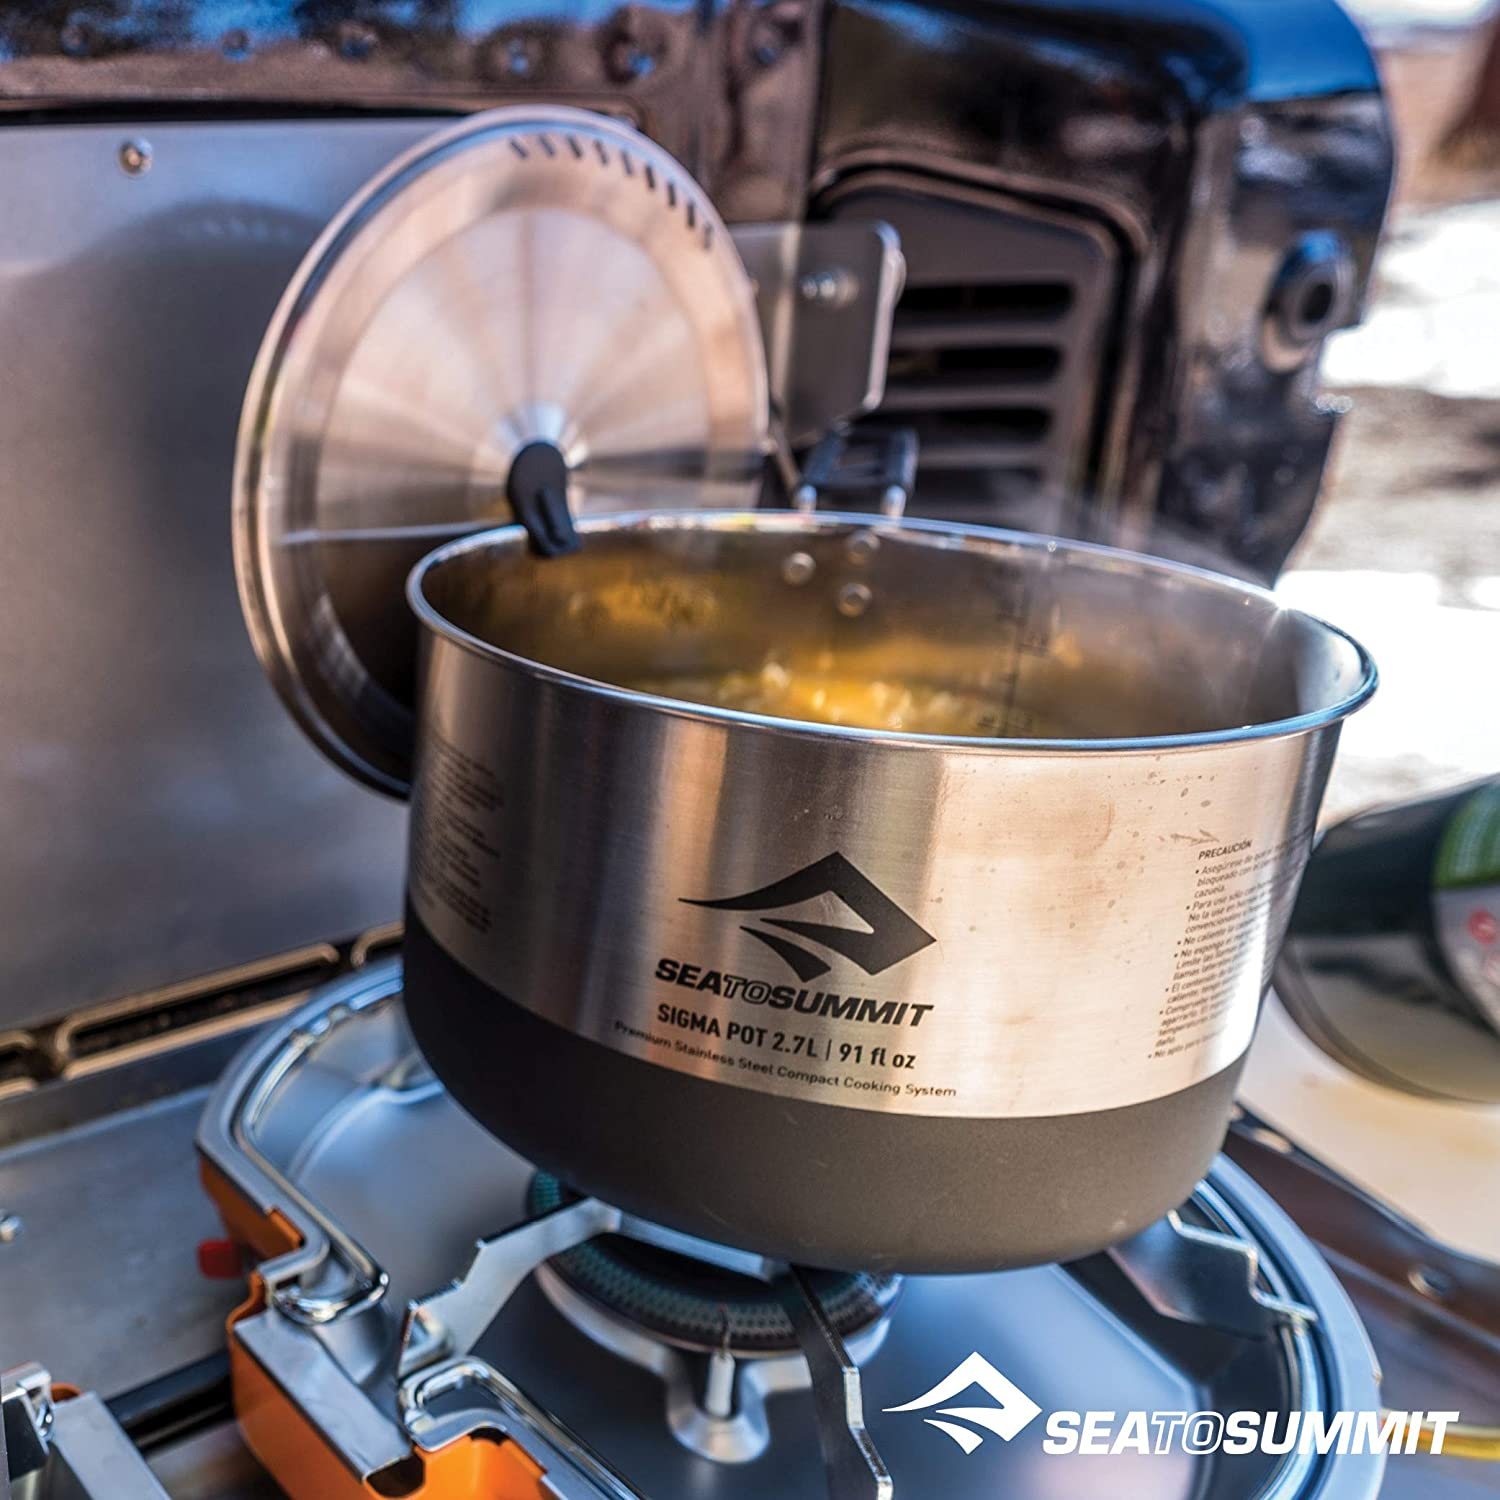 Amazon.com : Sea to Summit Sigma Stainless Steel Camping Pot Set 2.0, 2 Pot Set : Sports & Outdoors